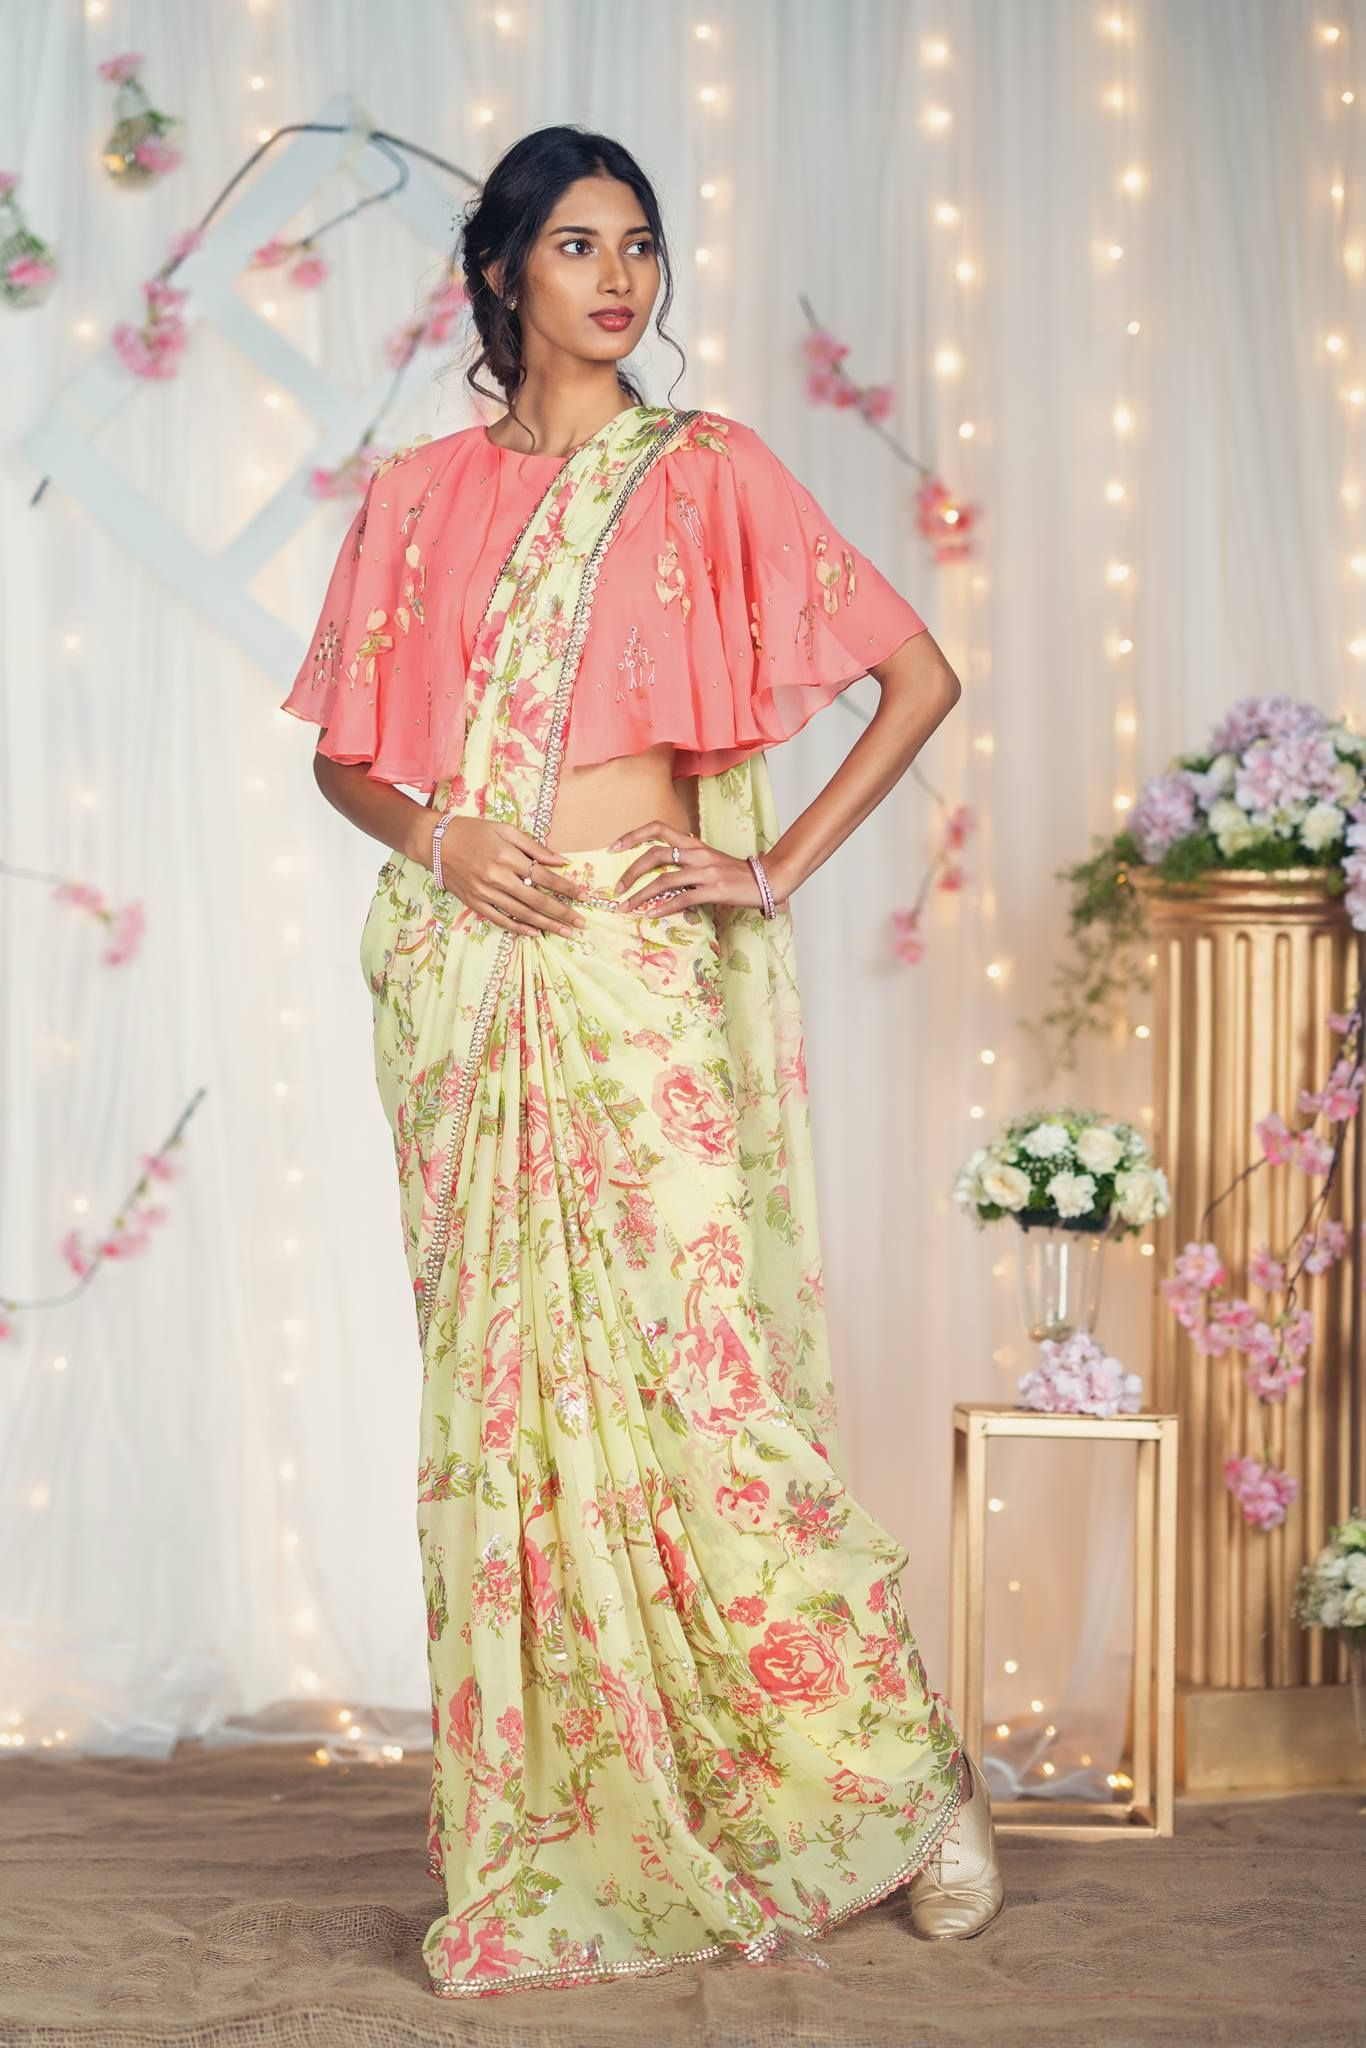 Wedding decorations traditional october 2018 A French Affair Yellow Organza Thread Embroidered Saree with Pink